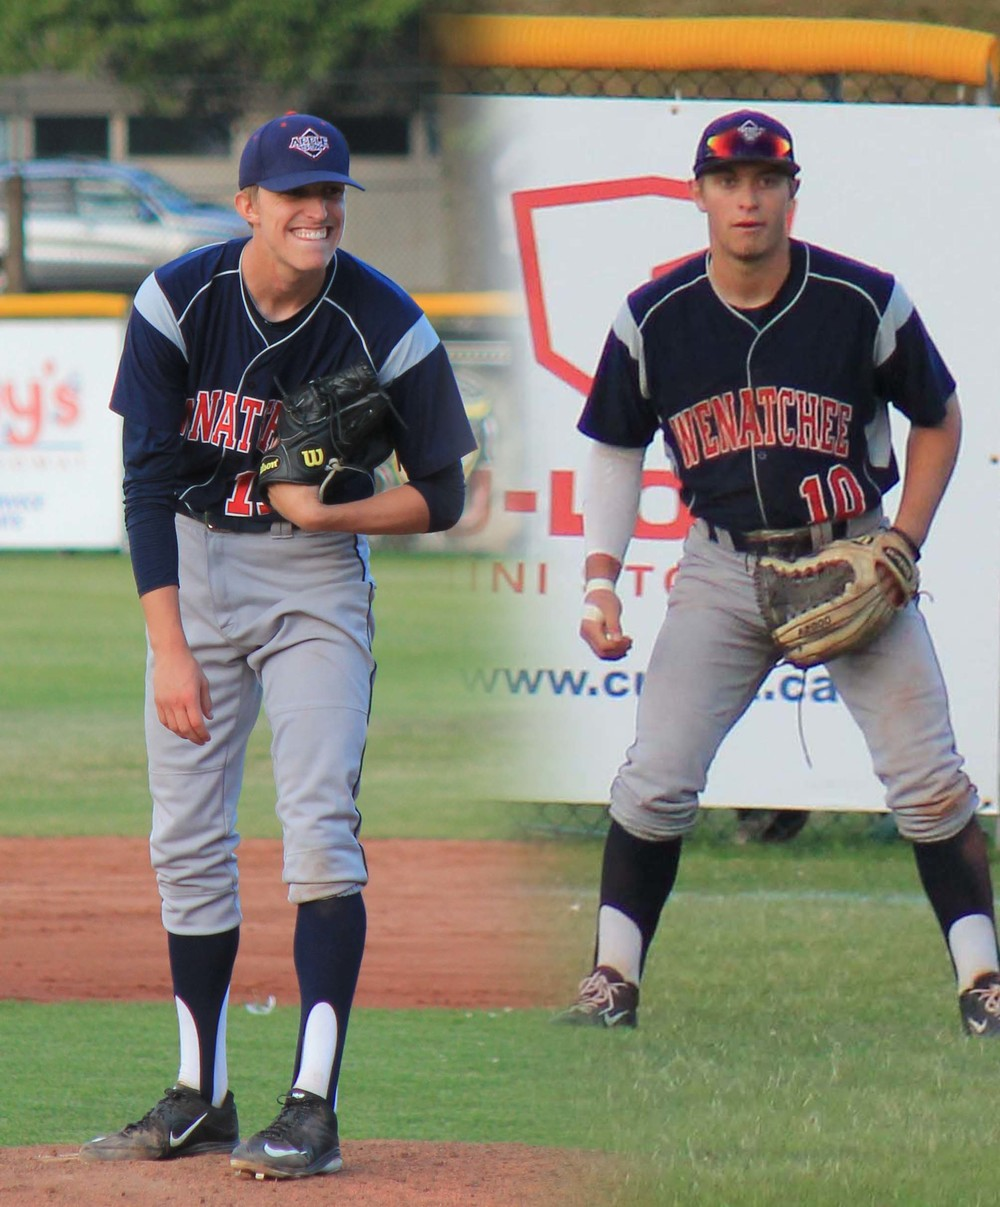 Hunter Wells and Sheldon Liikala were named to the 2015 WCL North All Star team, Monday.